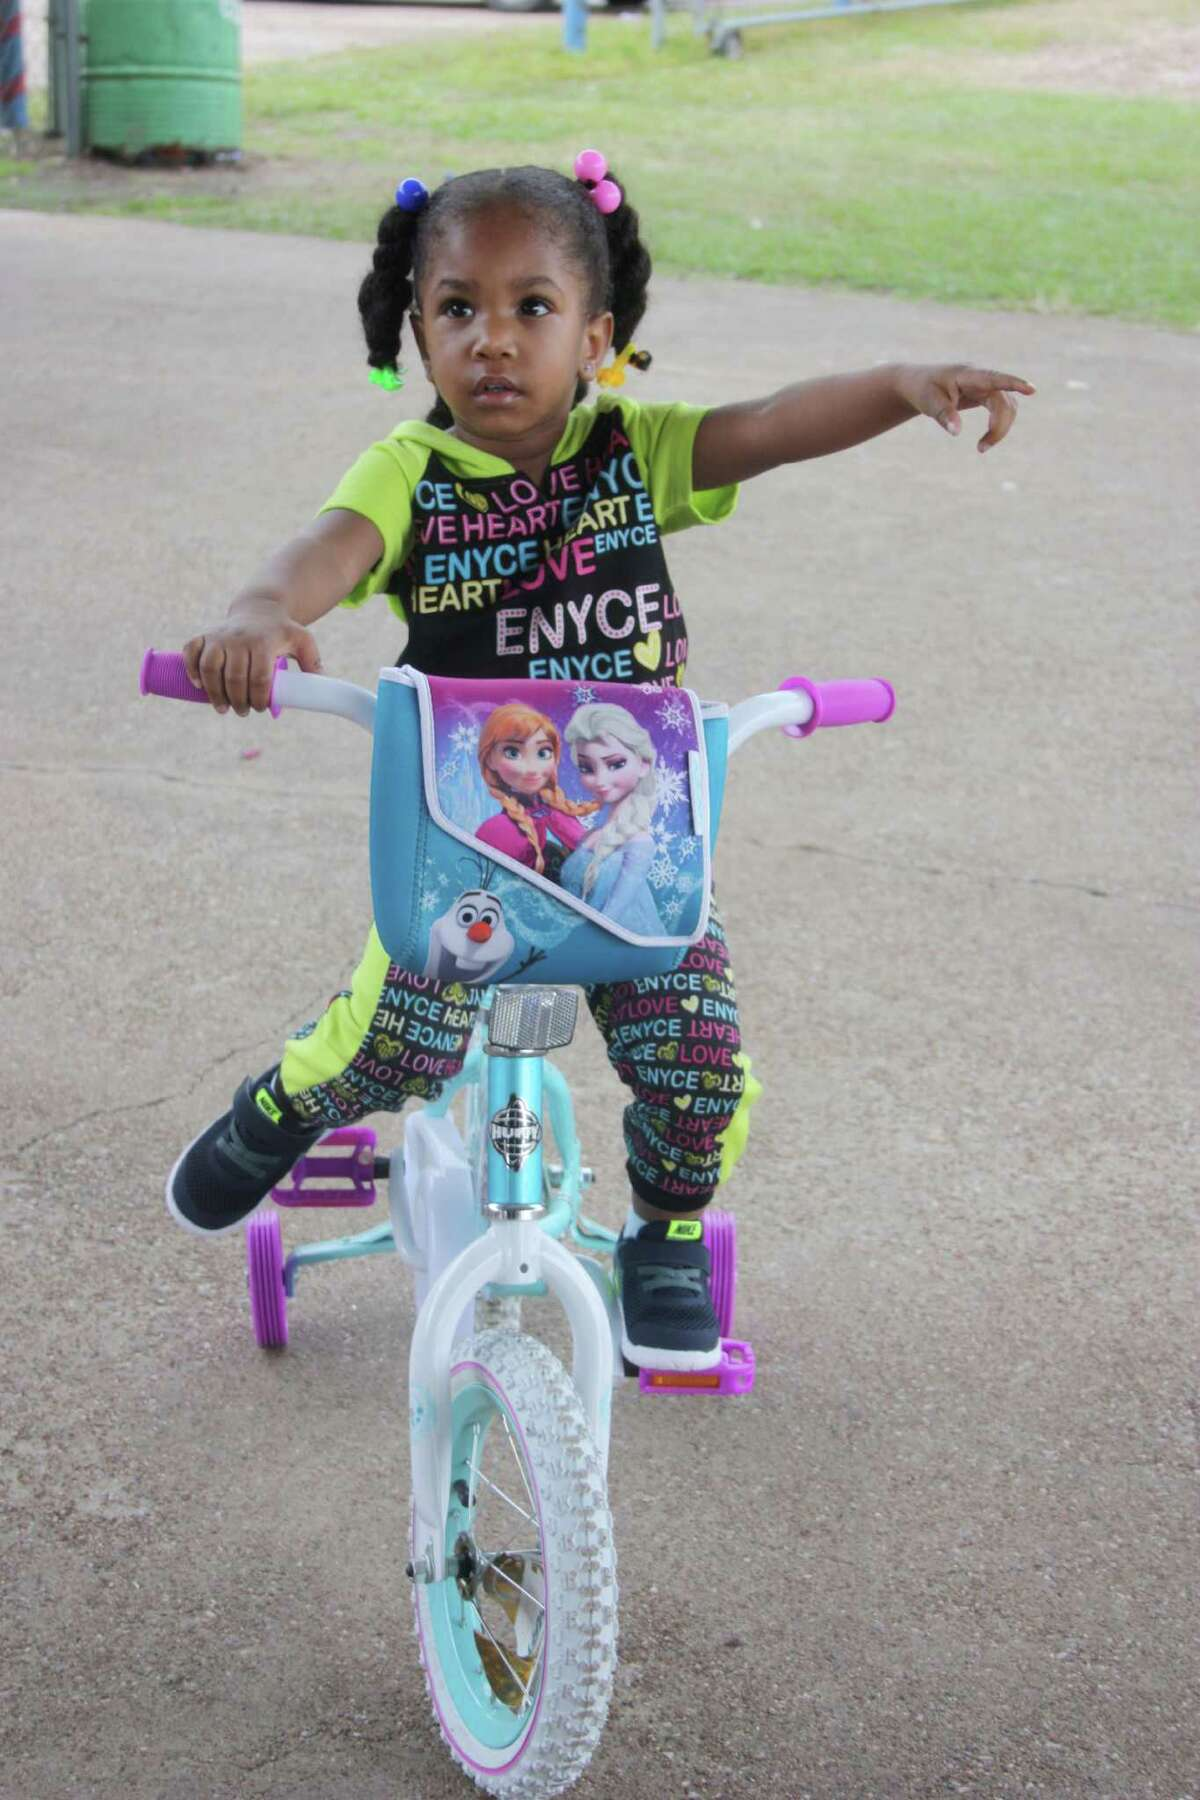 Peyton Wilridge sits on her new bicycle that was provided through Share Your Christmas.